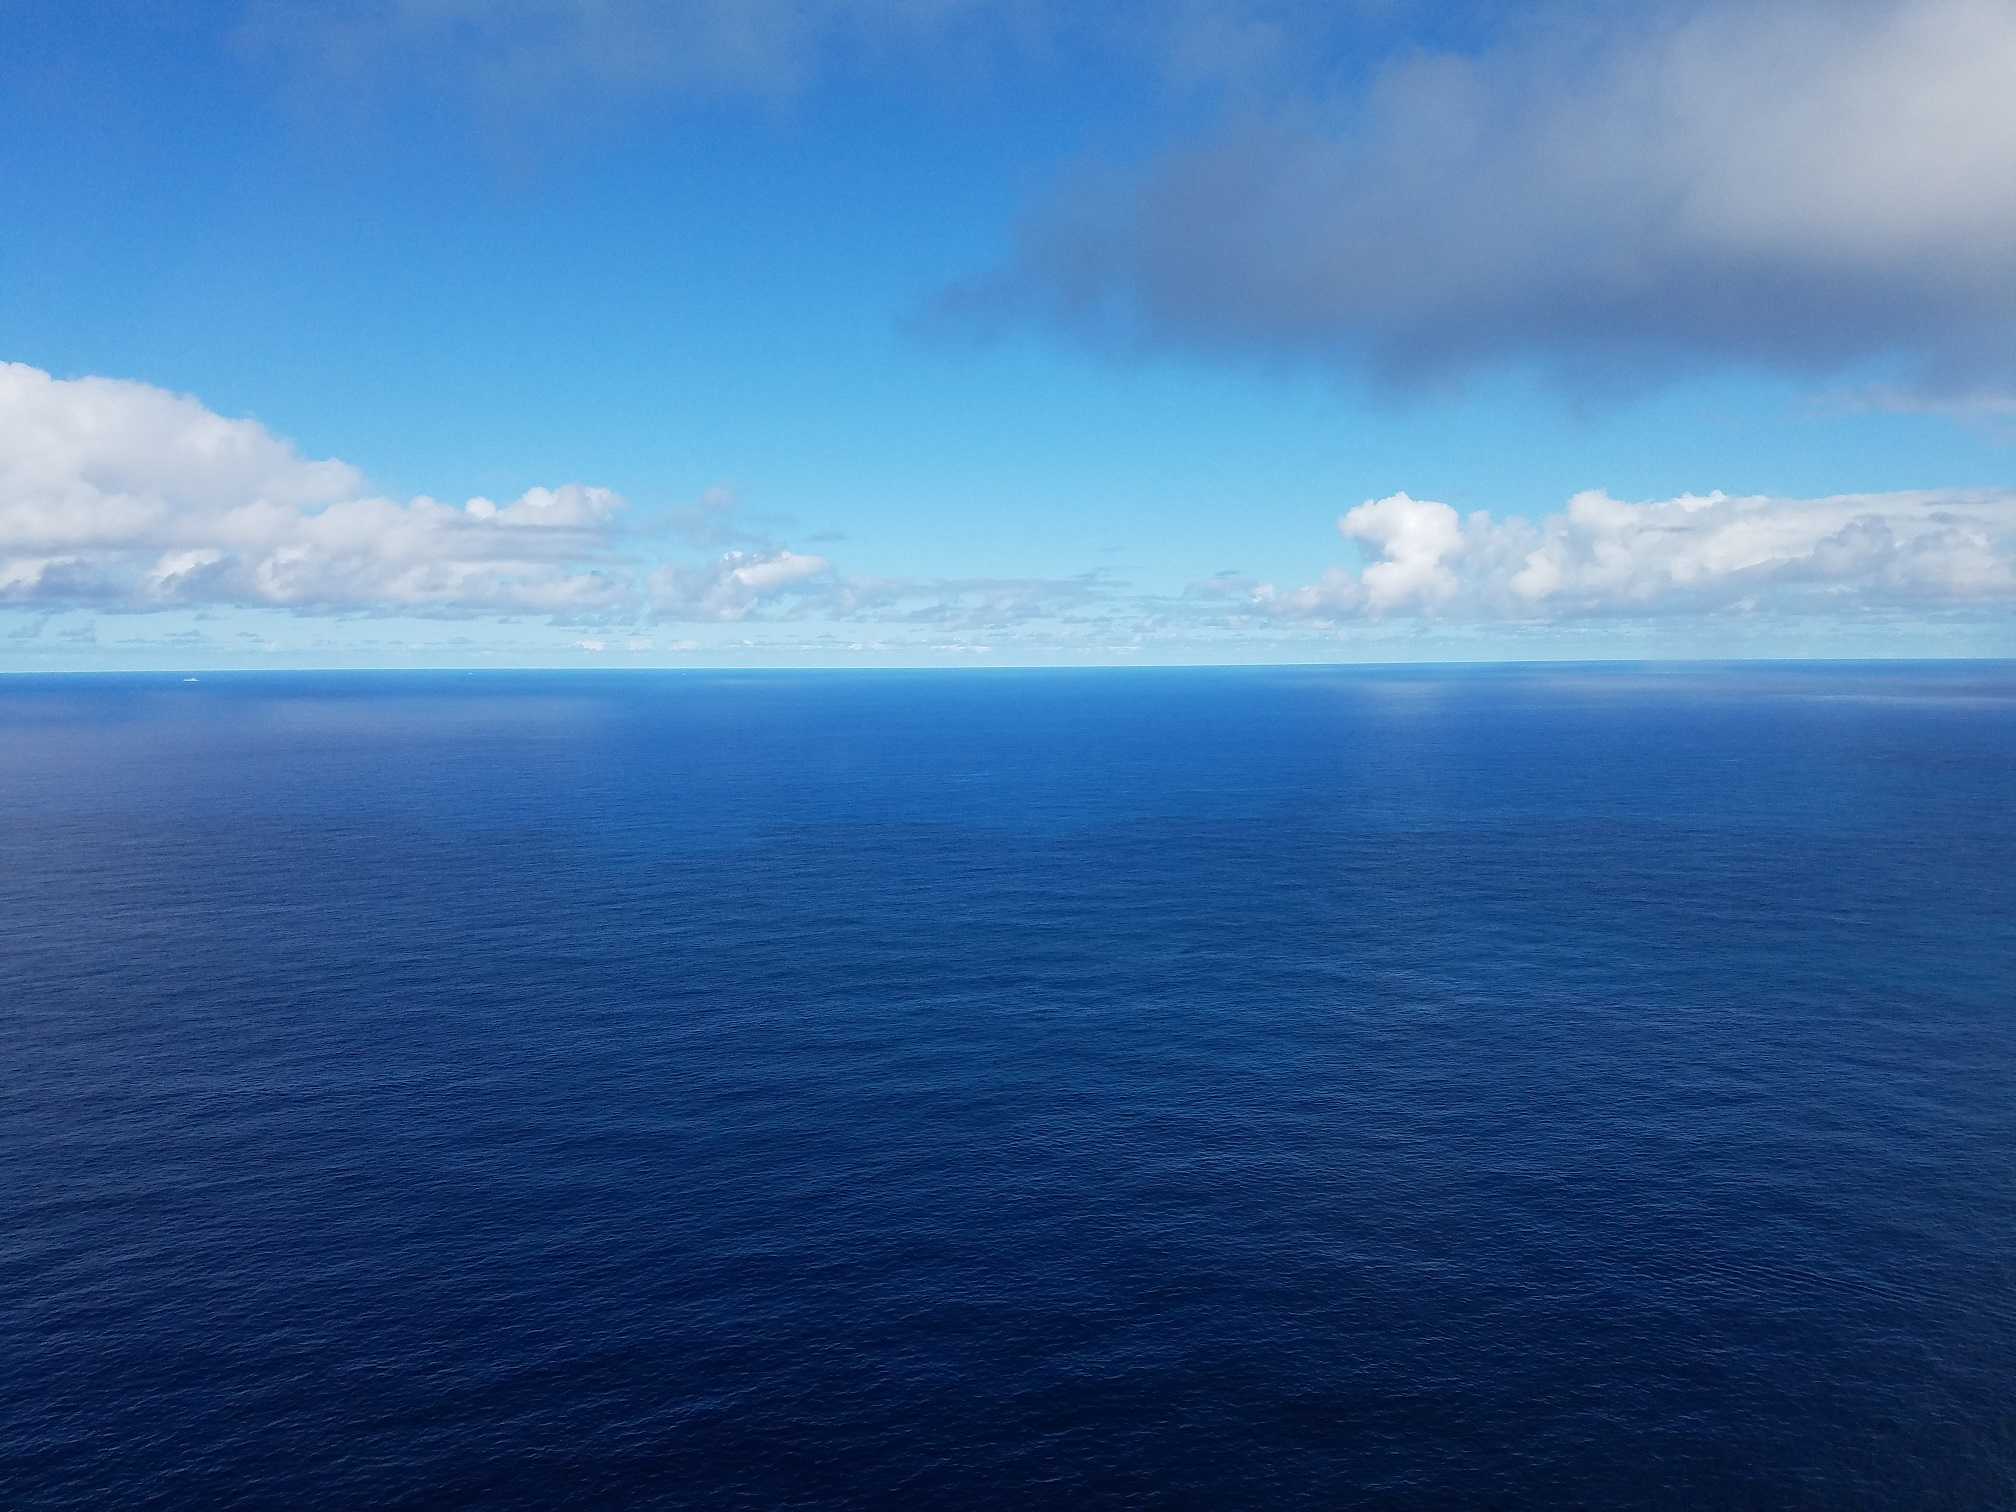 Arial view of ocean